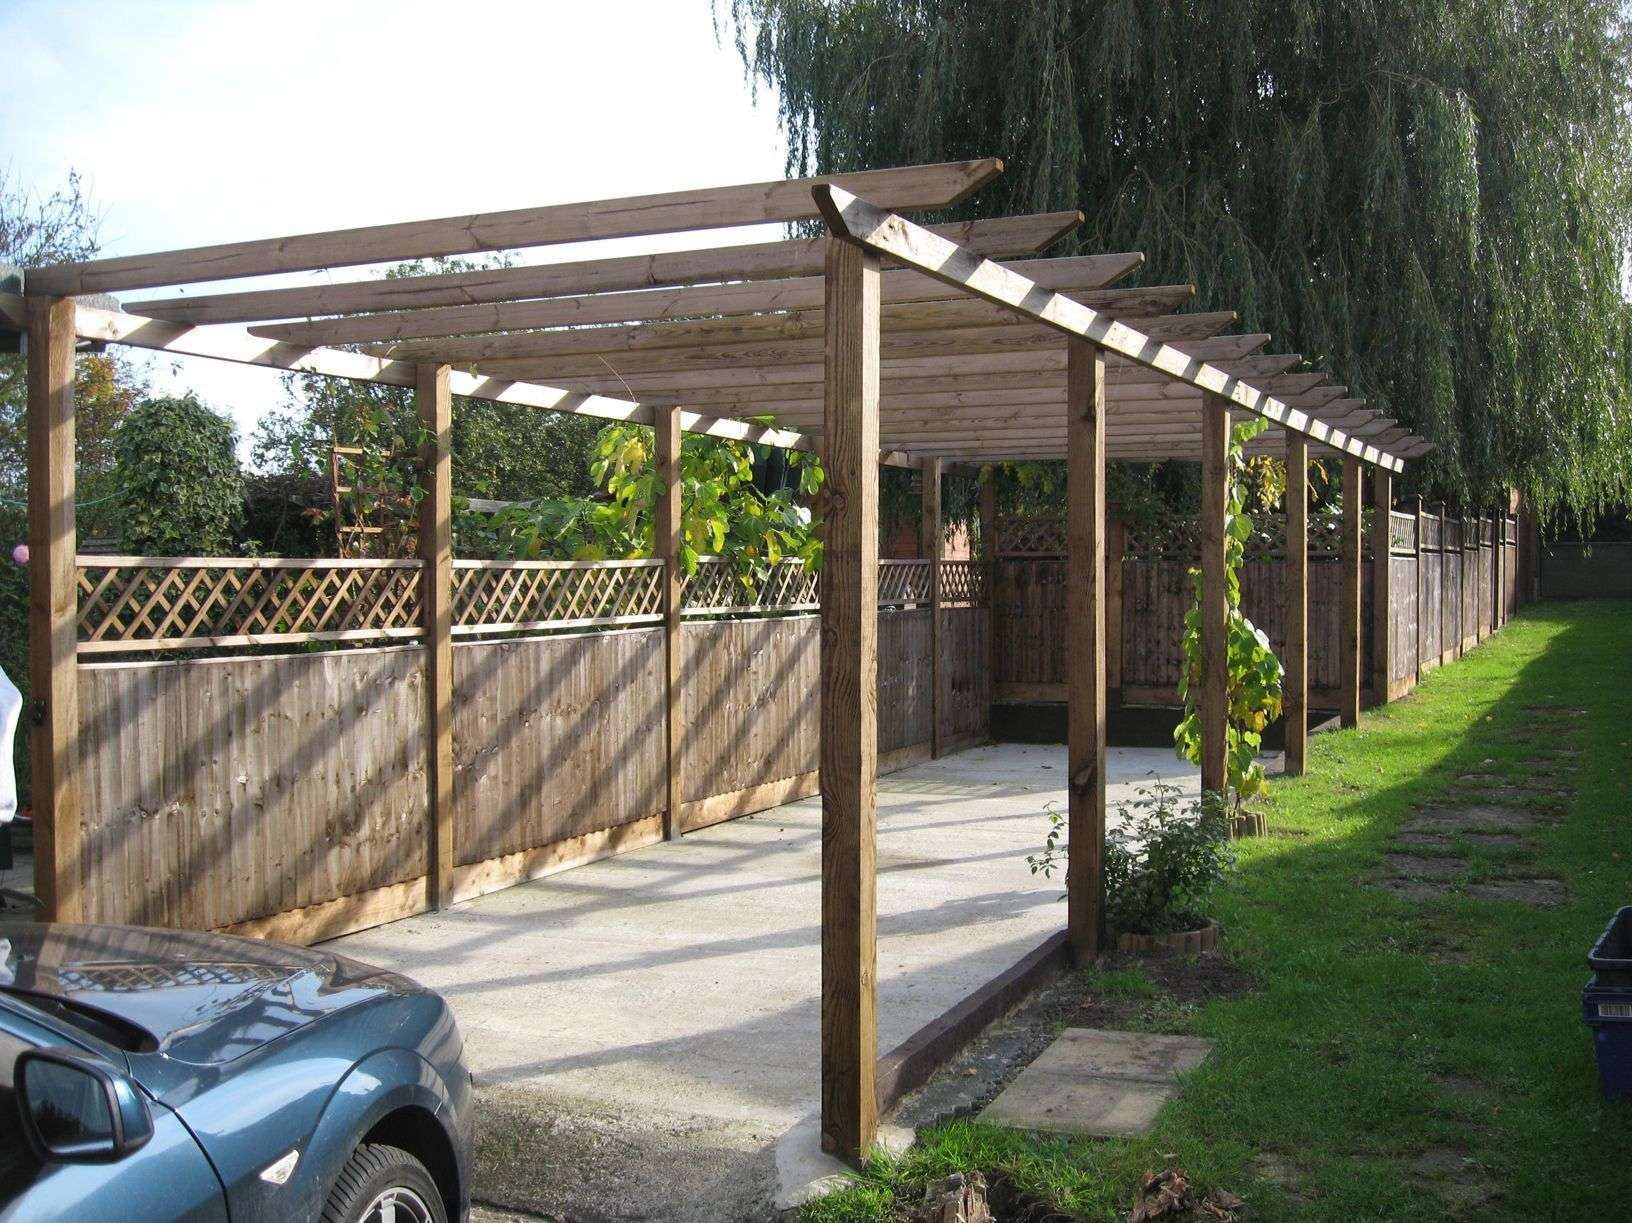 How To Build A Pitched Pergola Wooden Plans Do It Yourself ...